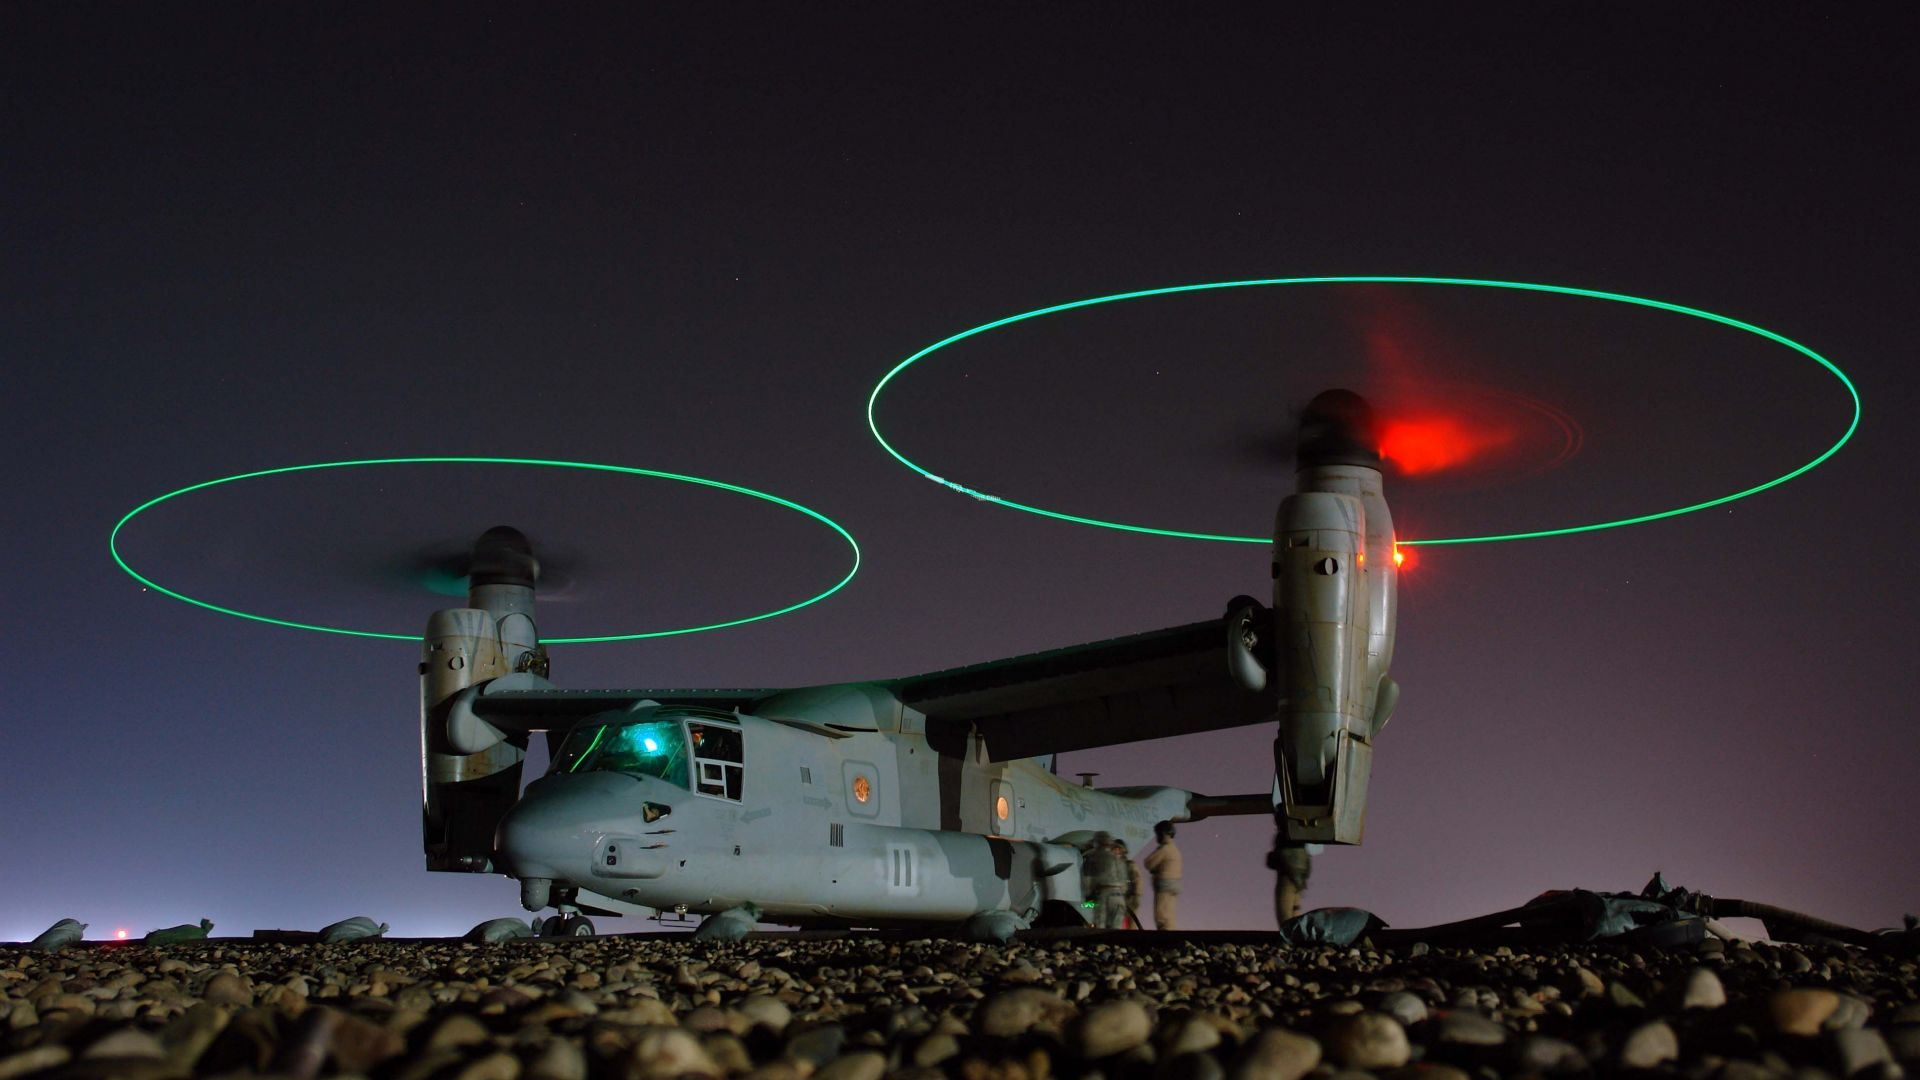 Bell V-22 Osprey, tiltrotor military aircraft, U.S. Air Force (horizontal)